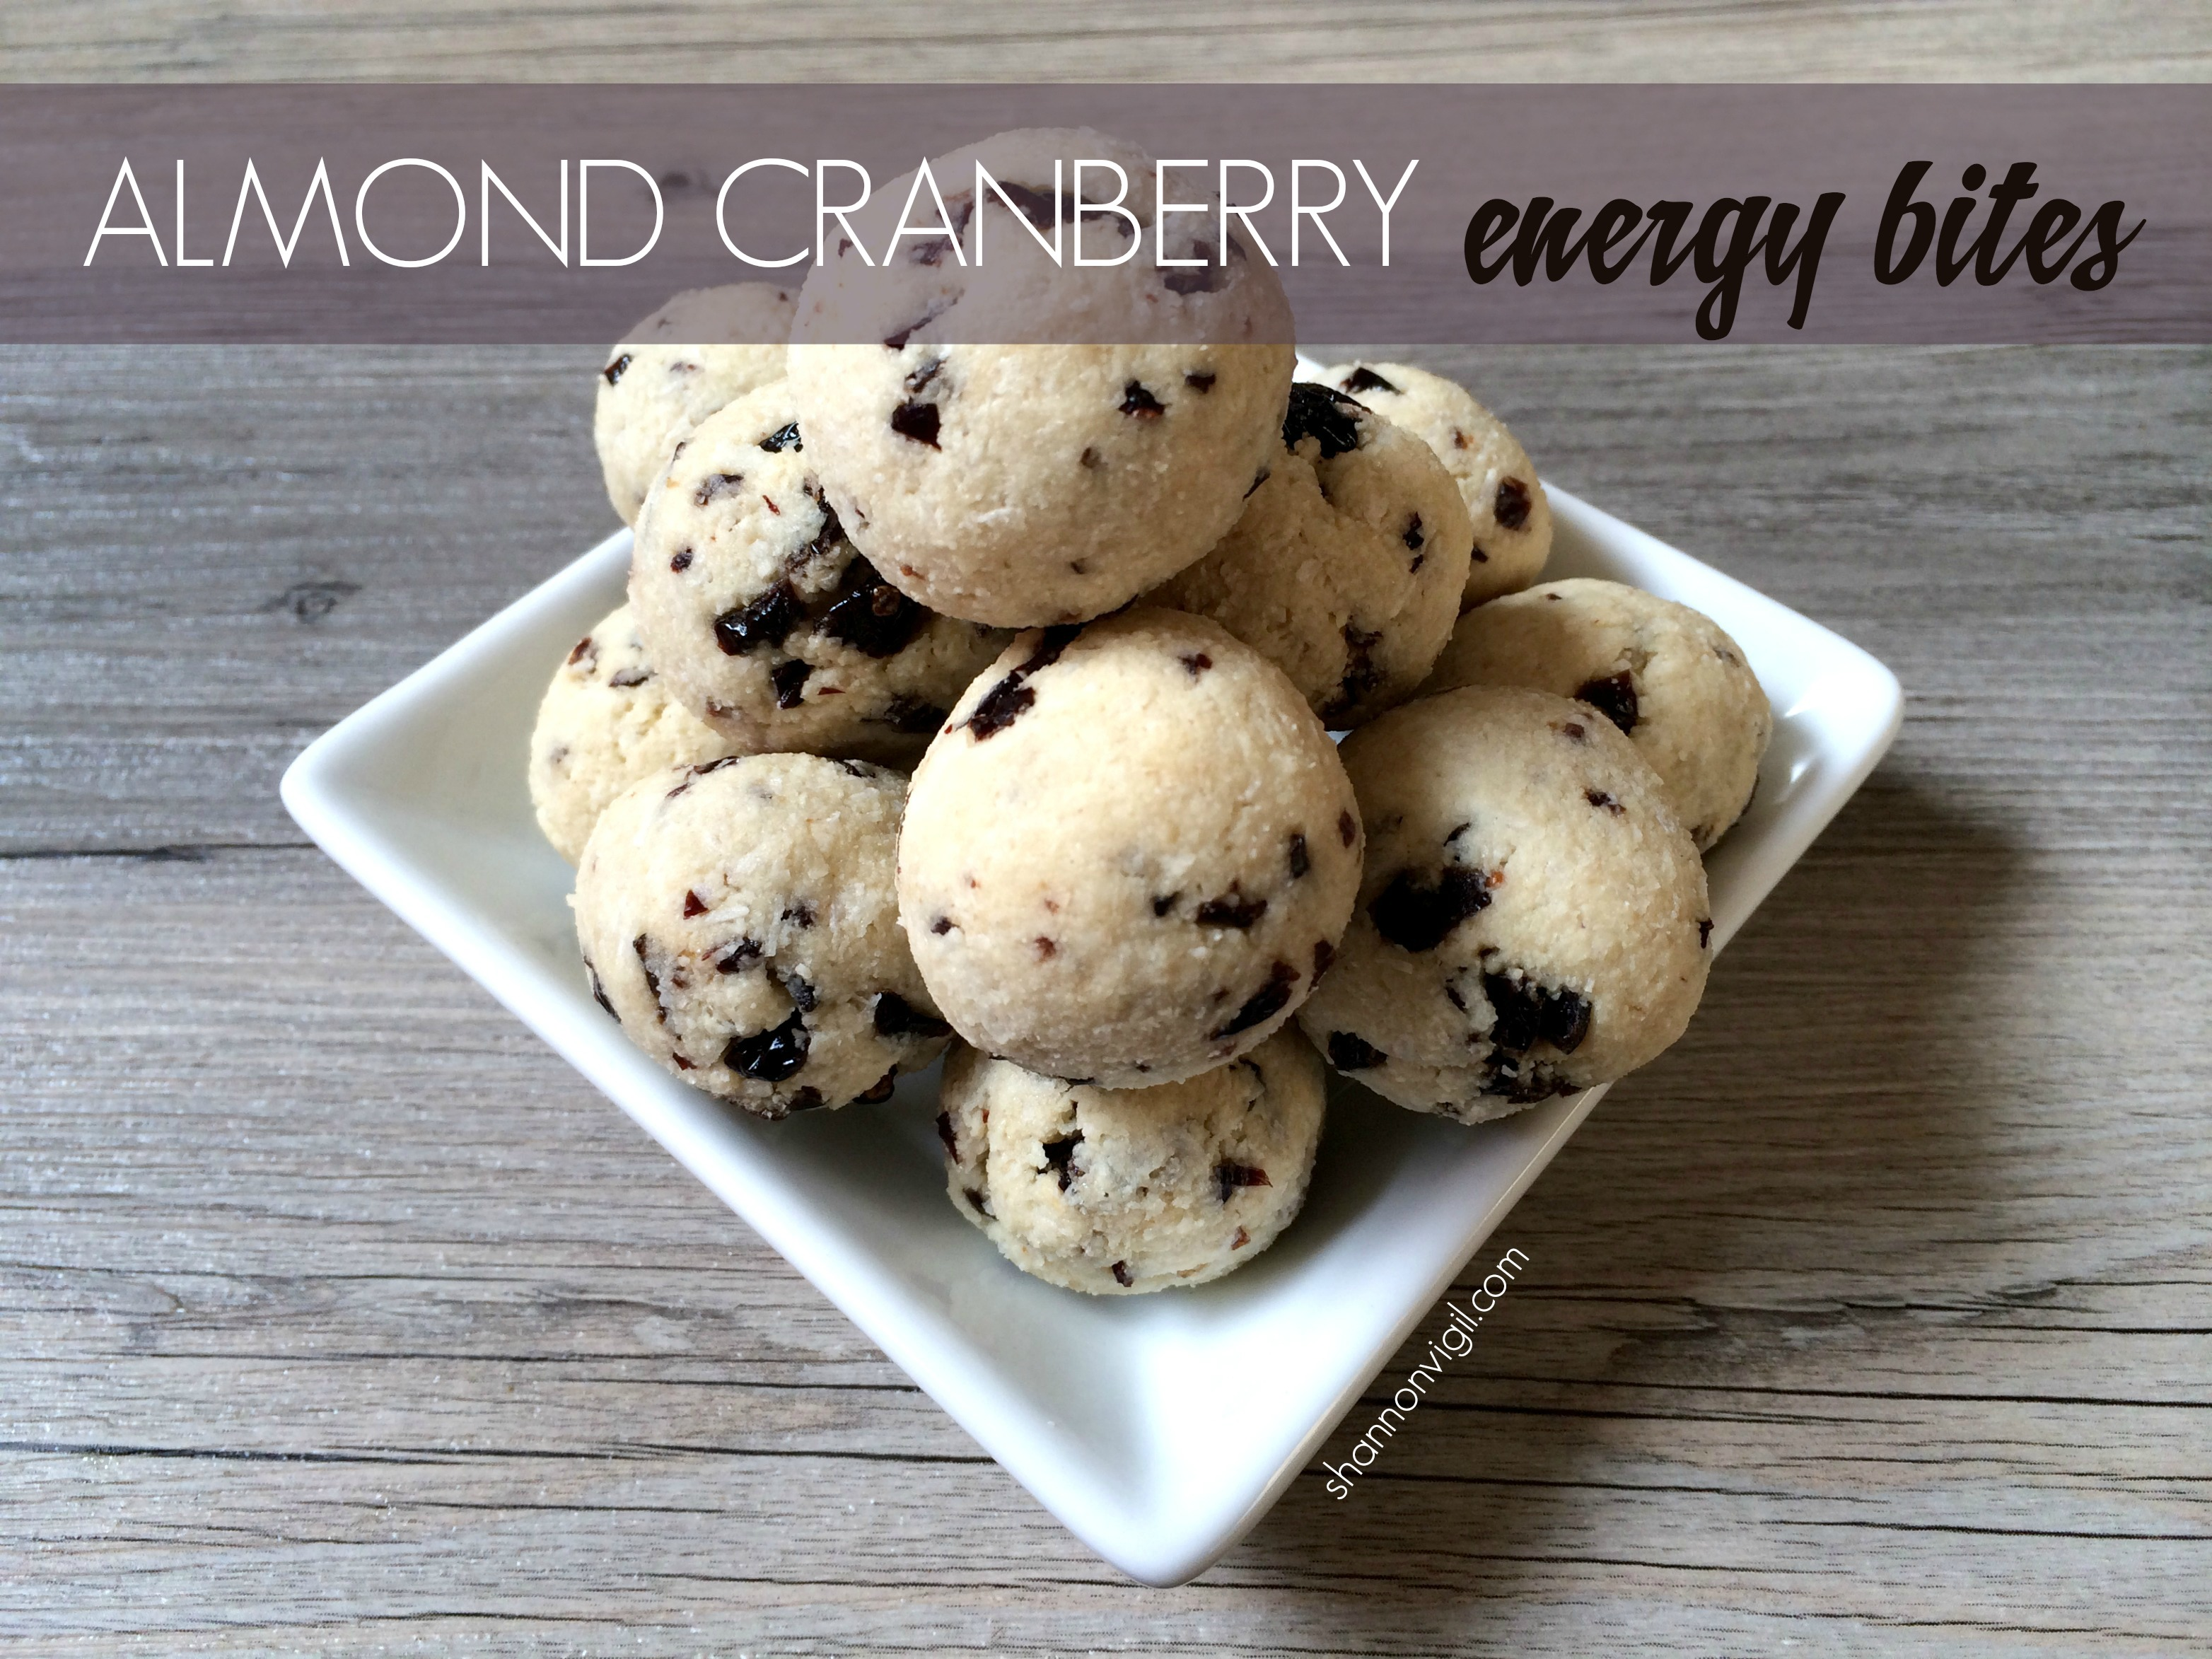 Almond Cranberry Energy Bites